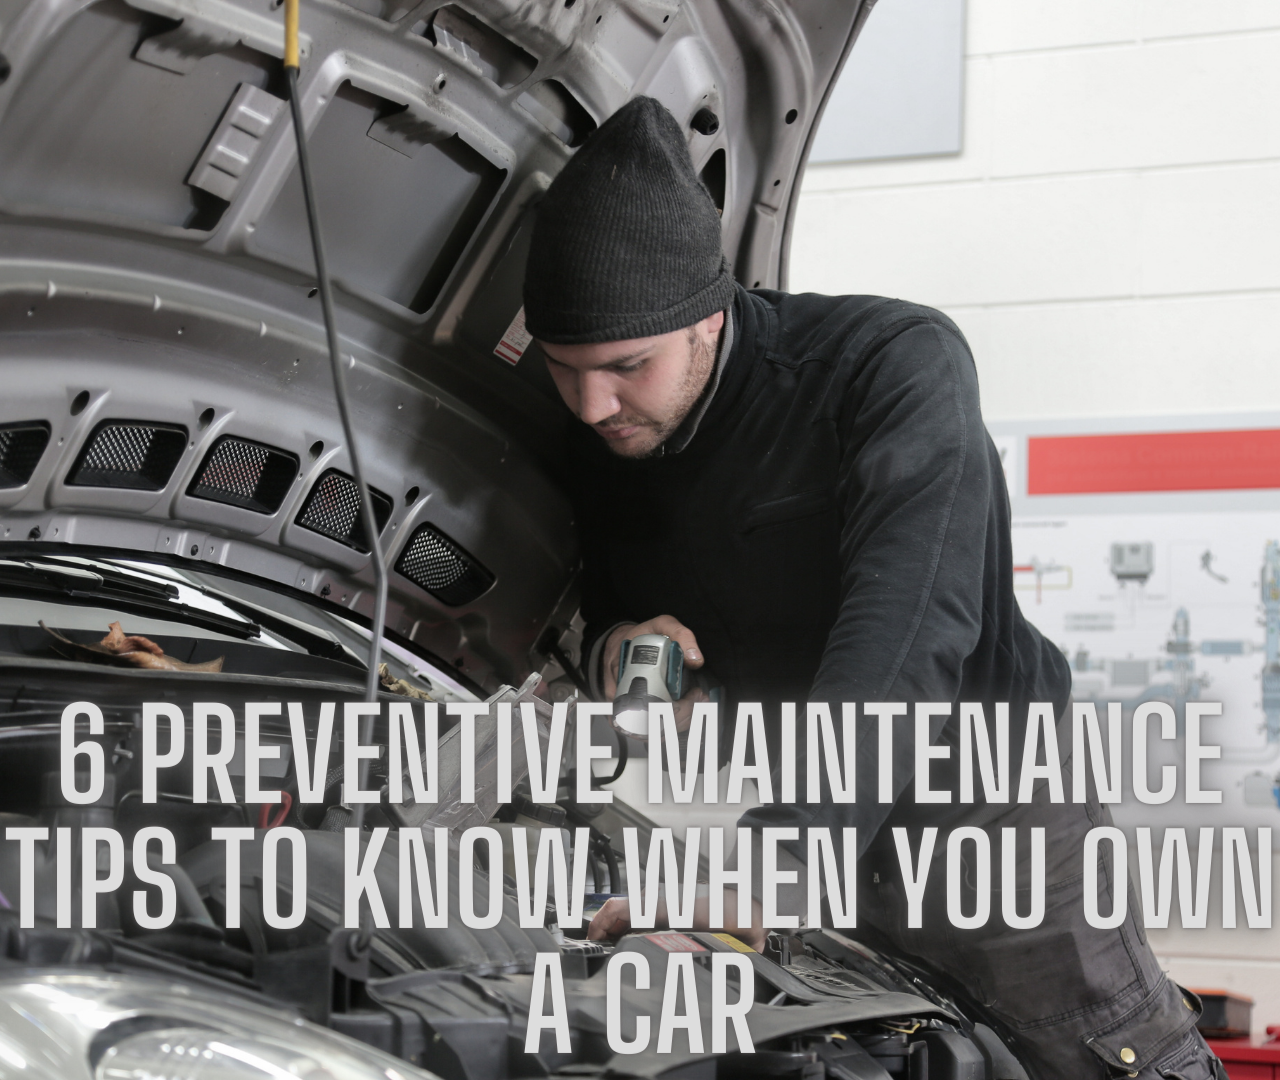 preventive maintenance on a car, 6 preventative maintenance tips when you own a car, what are the preventative maintenance tips for cars